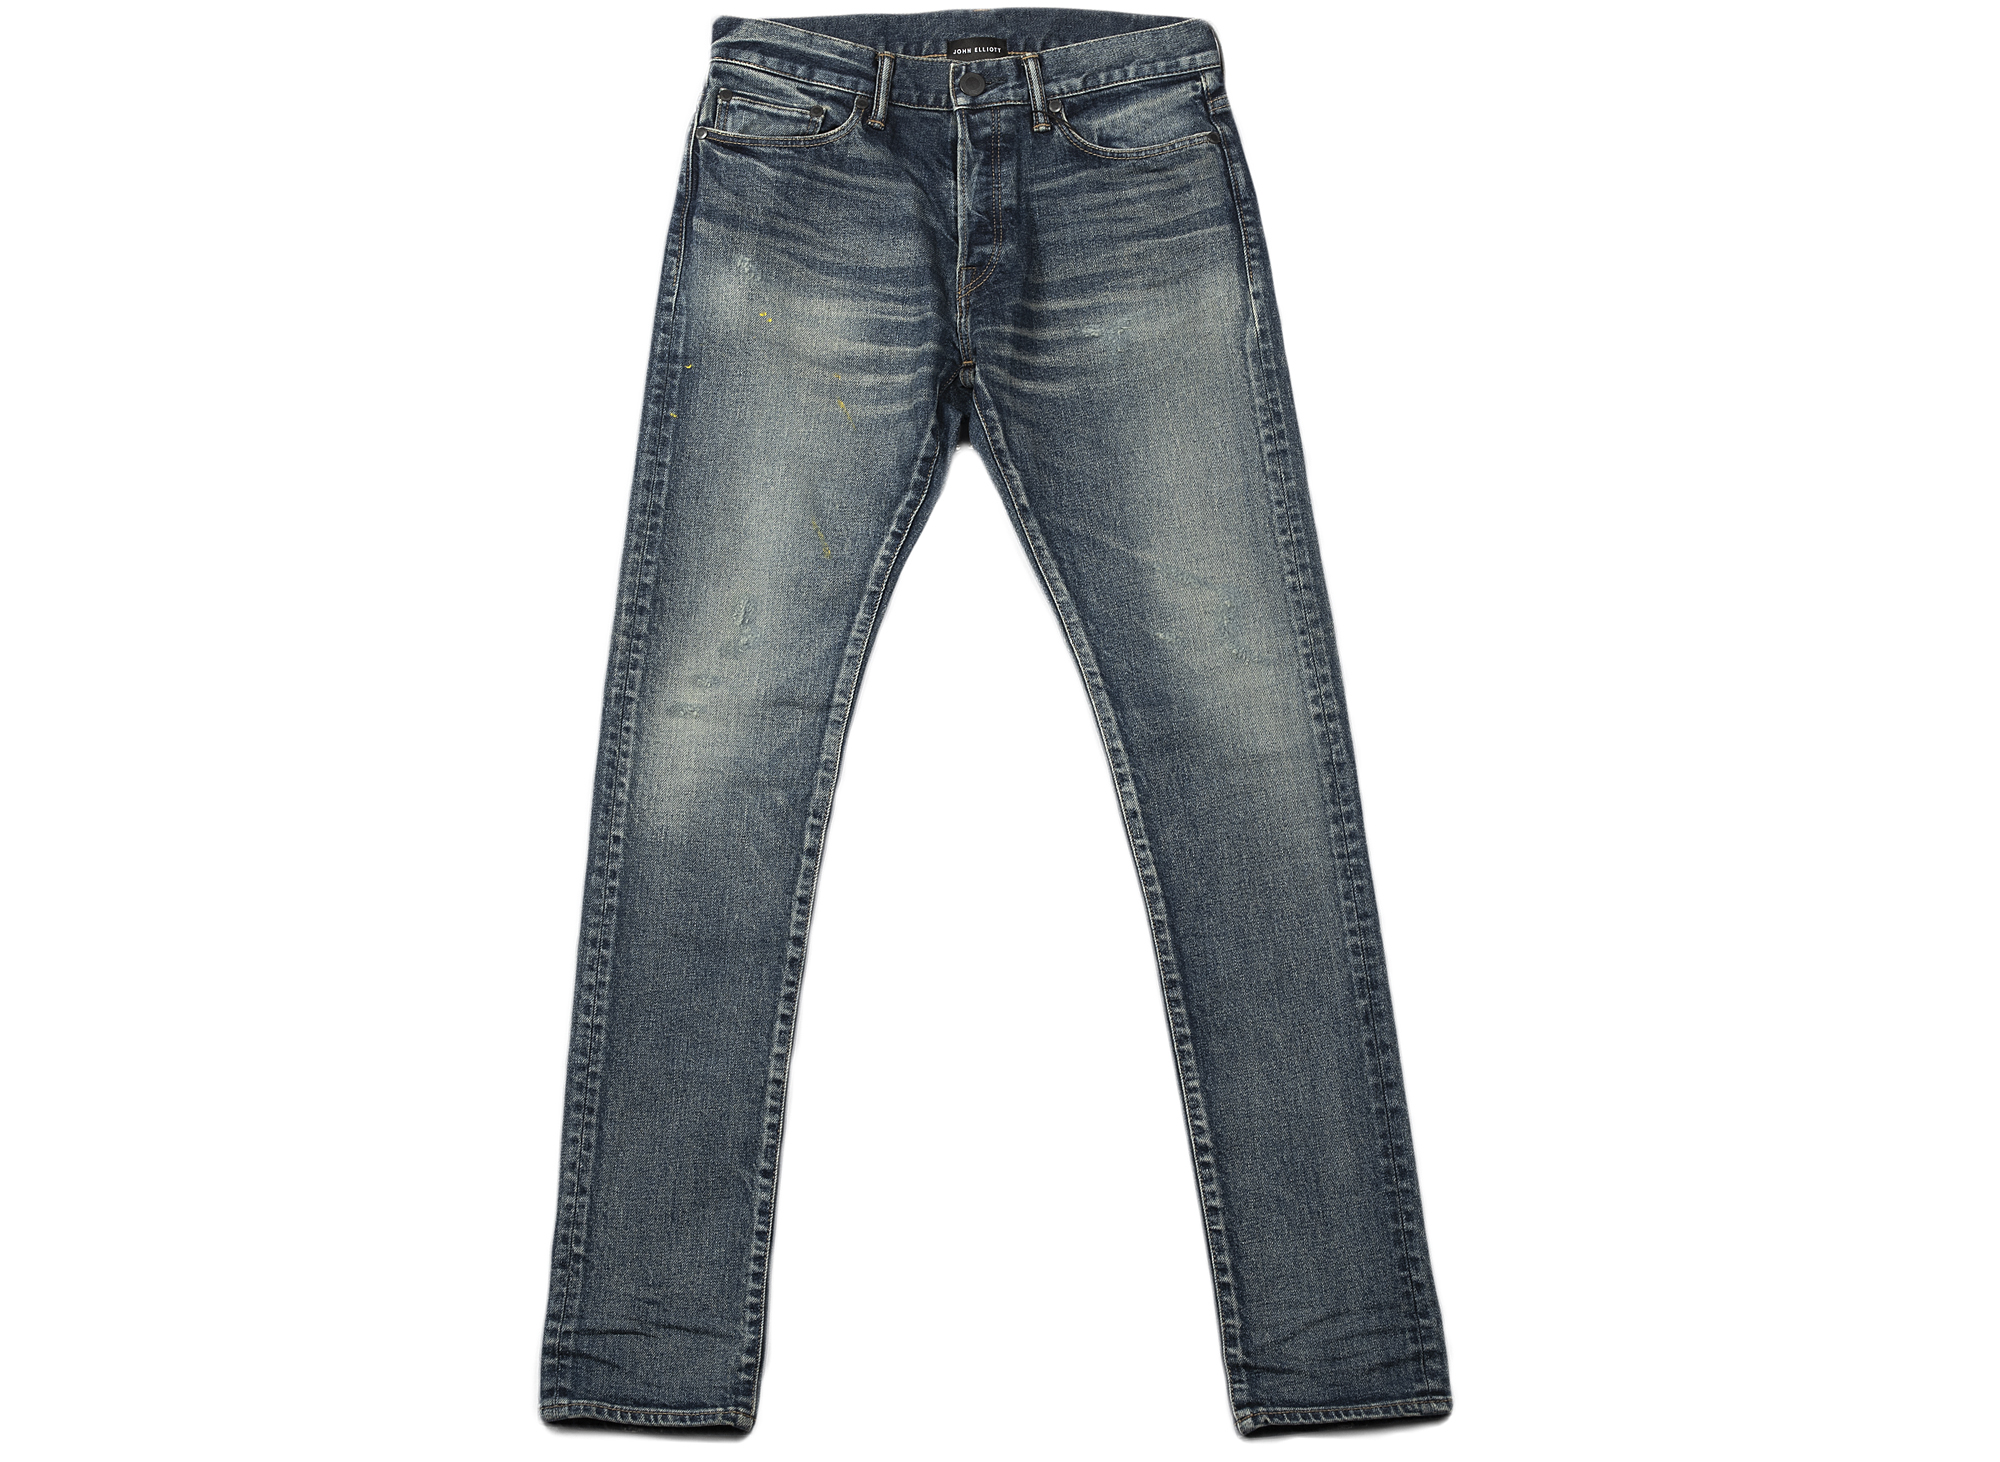 John Elliott The Cast 2 Jeans 'Hover' XLD